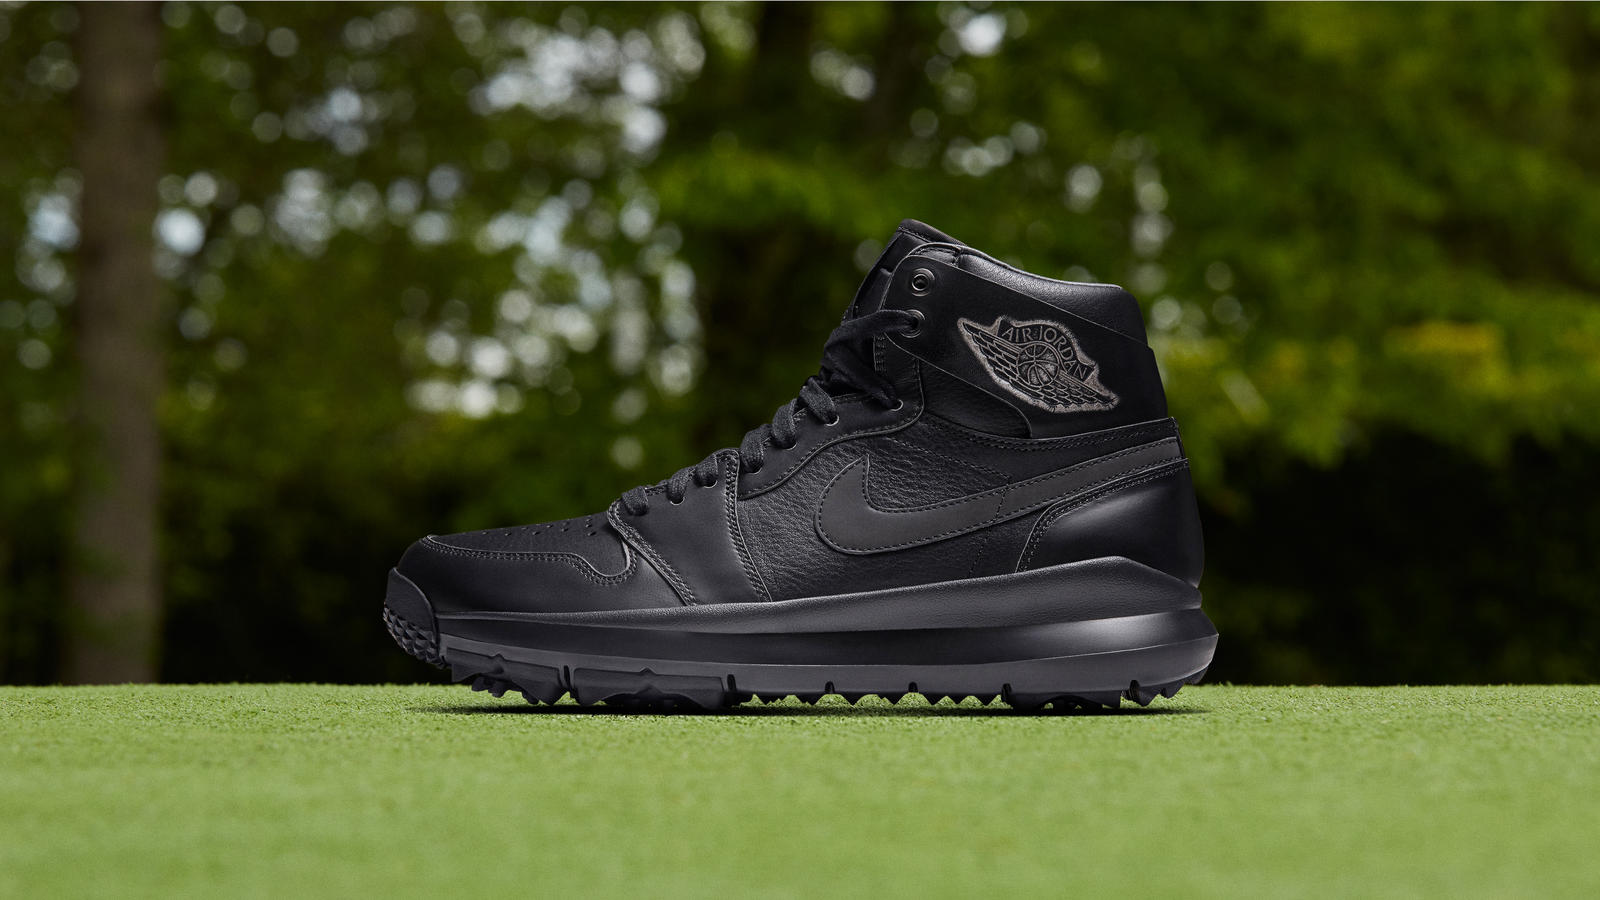 c756f53a15f92c Air Jordan 1 Golf Premium - Nike News